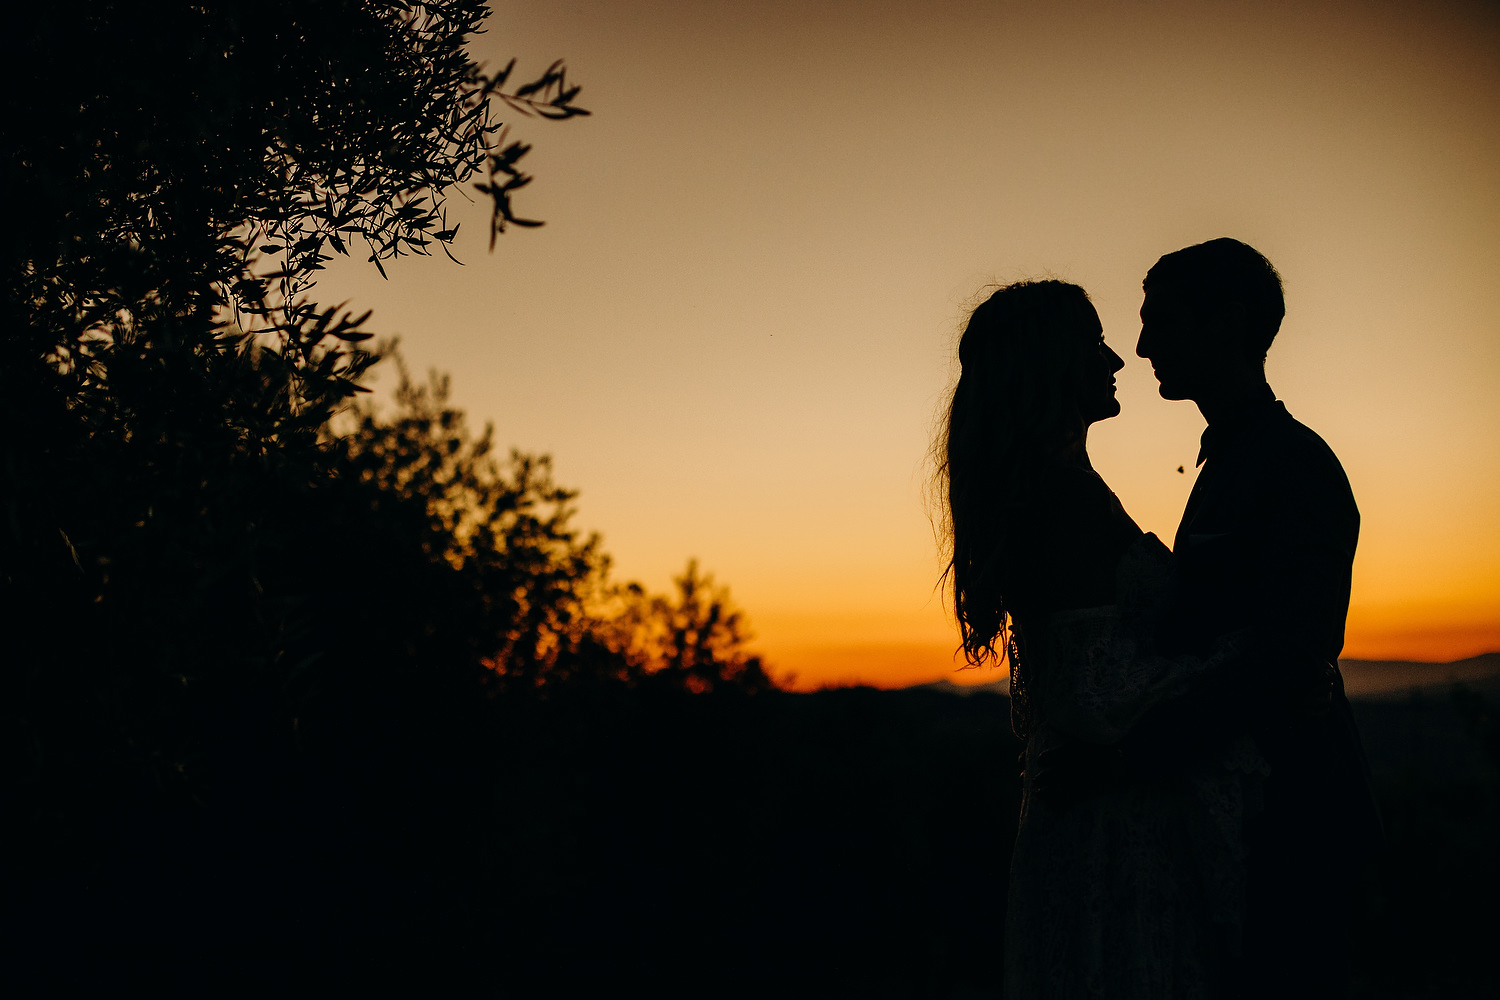 sunset silhouette of couple